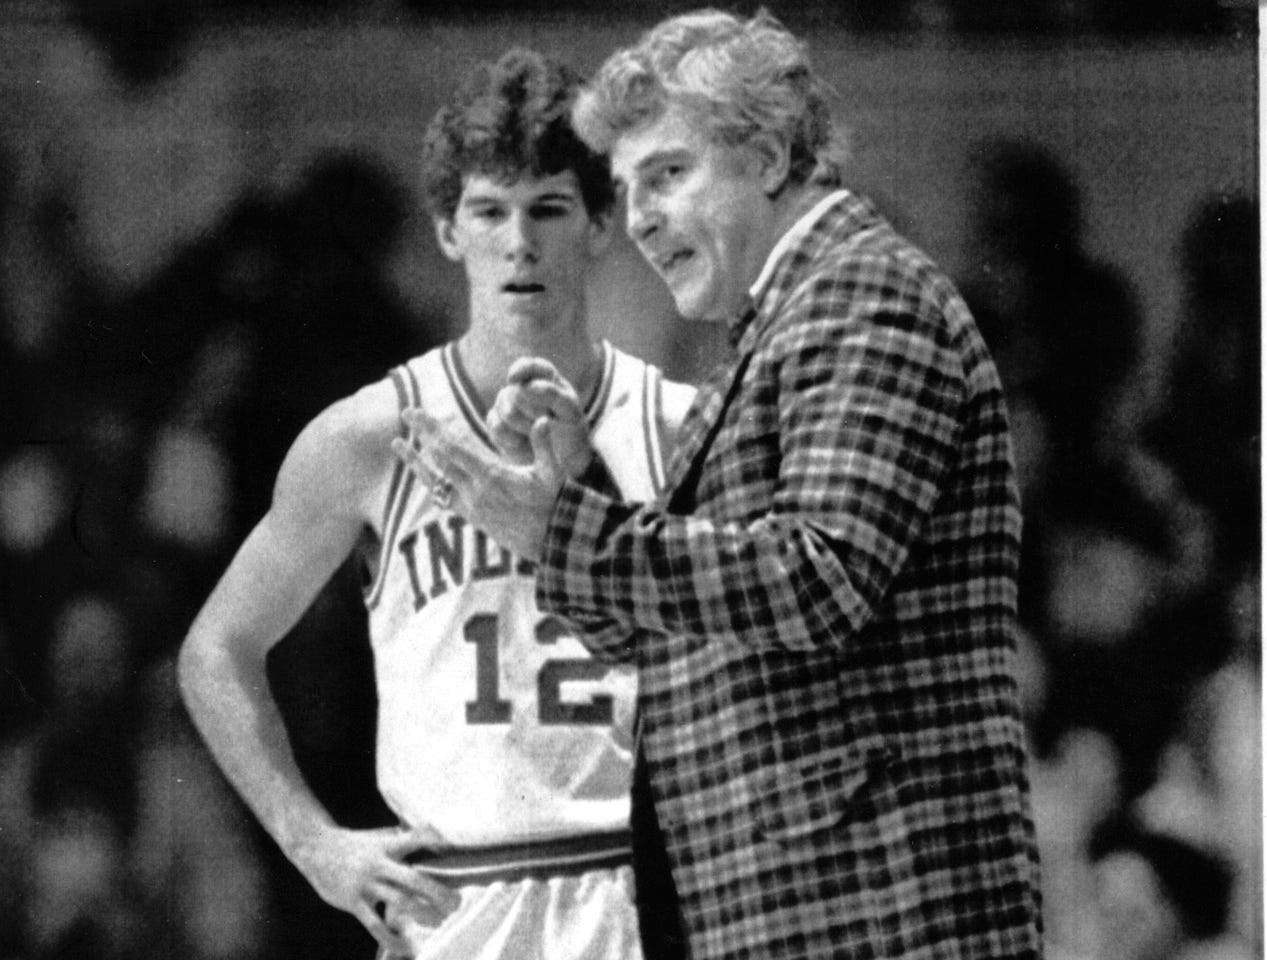 -- Indiana University basketball coach Bobby Knight with Steve Alford March 18 1984.